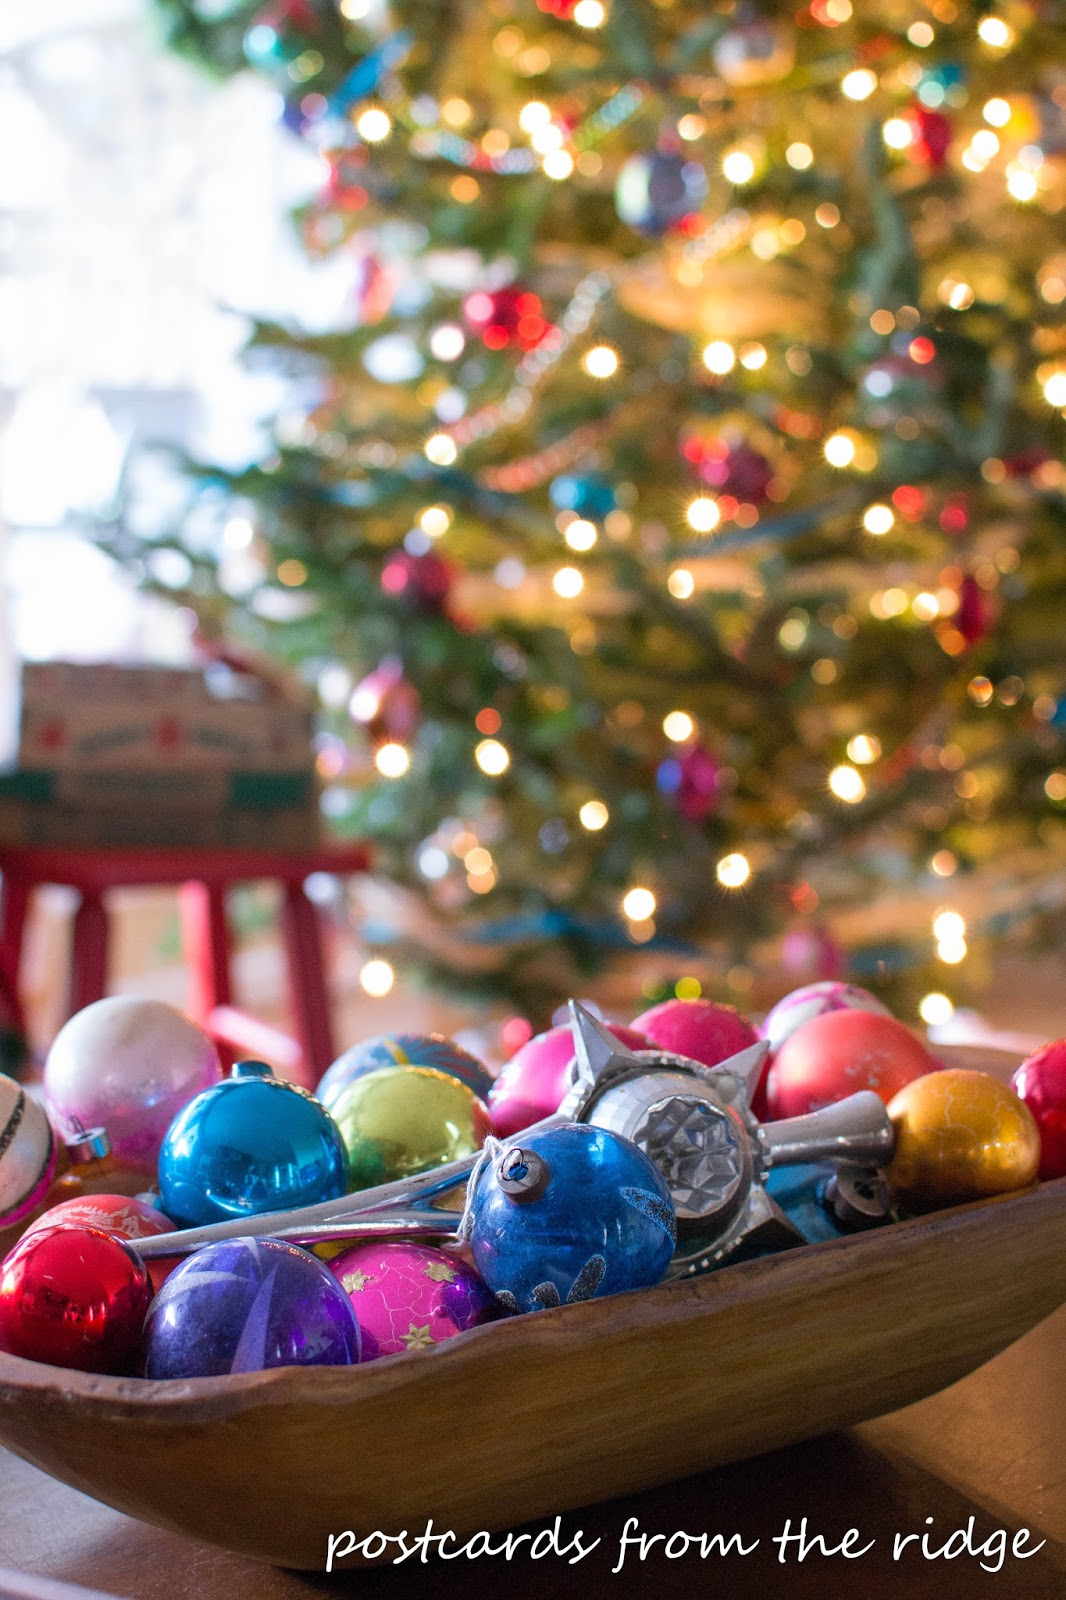 Christmas Decorating Ideas 2014 17 simple christmas decorating ideas that anyone can do